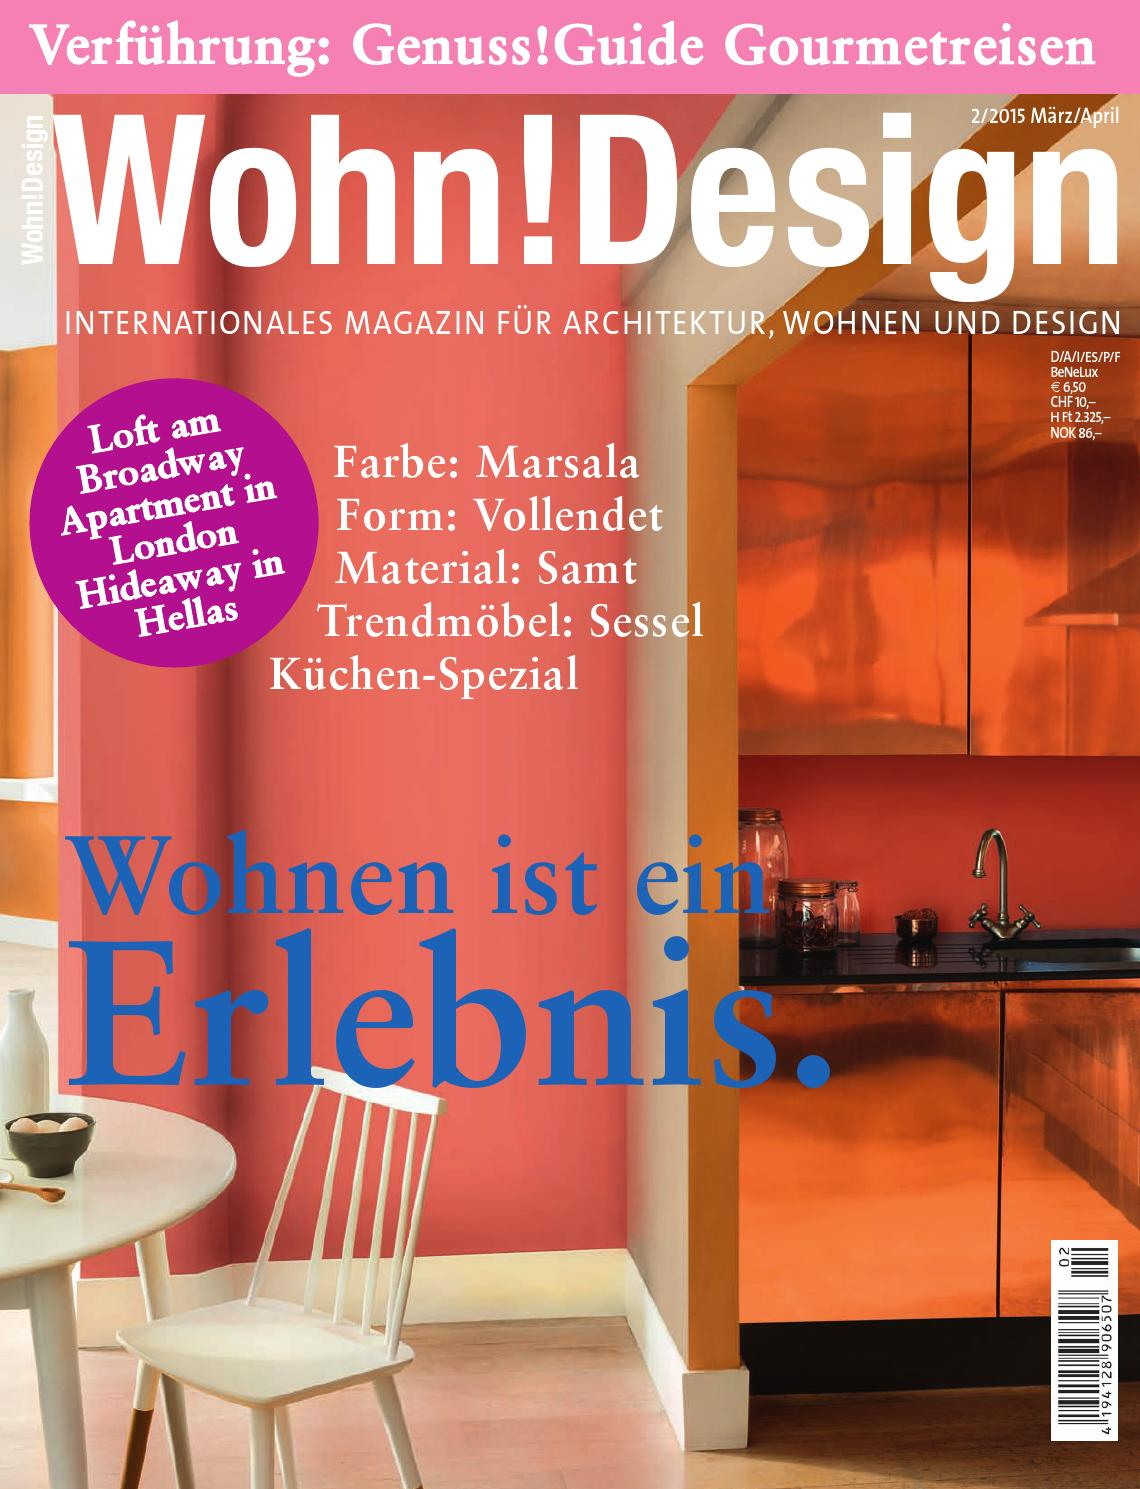 Wohn!Design 2/2015 by Wohn!Design - issuu